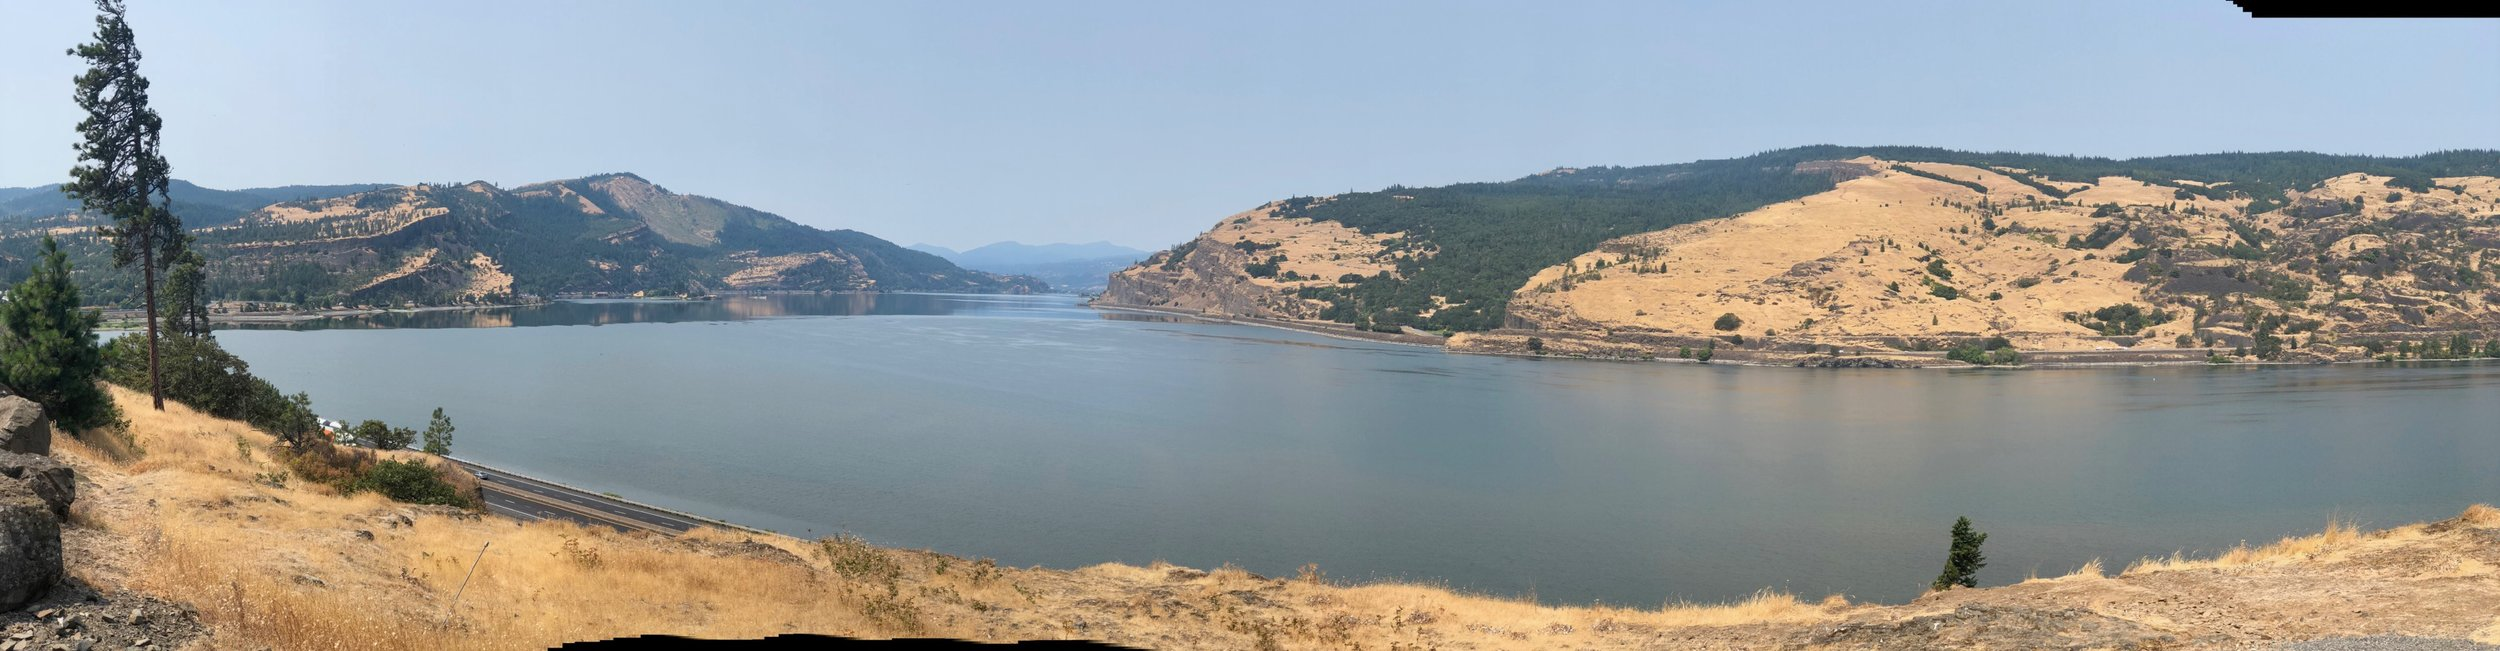 Views like this are why we come to Hood River.